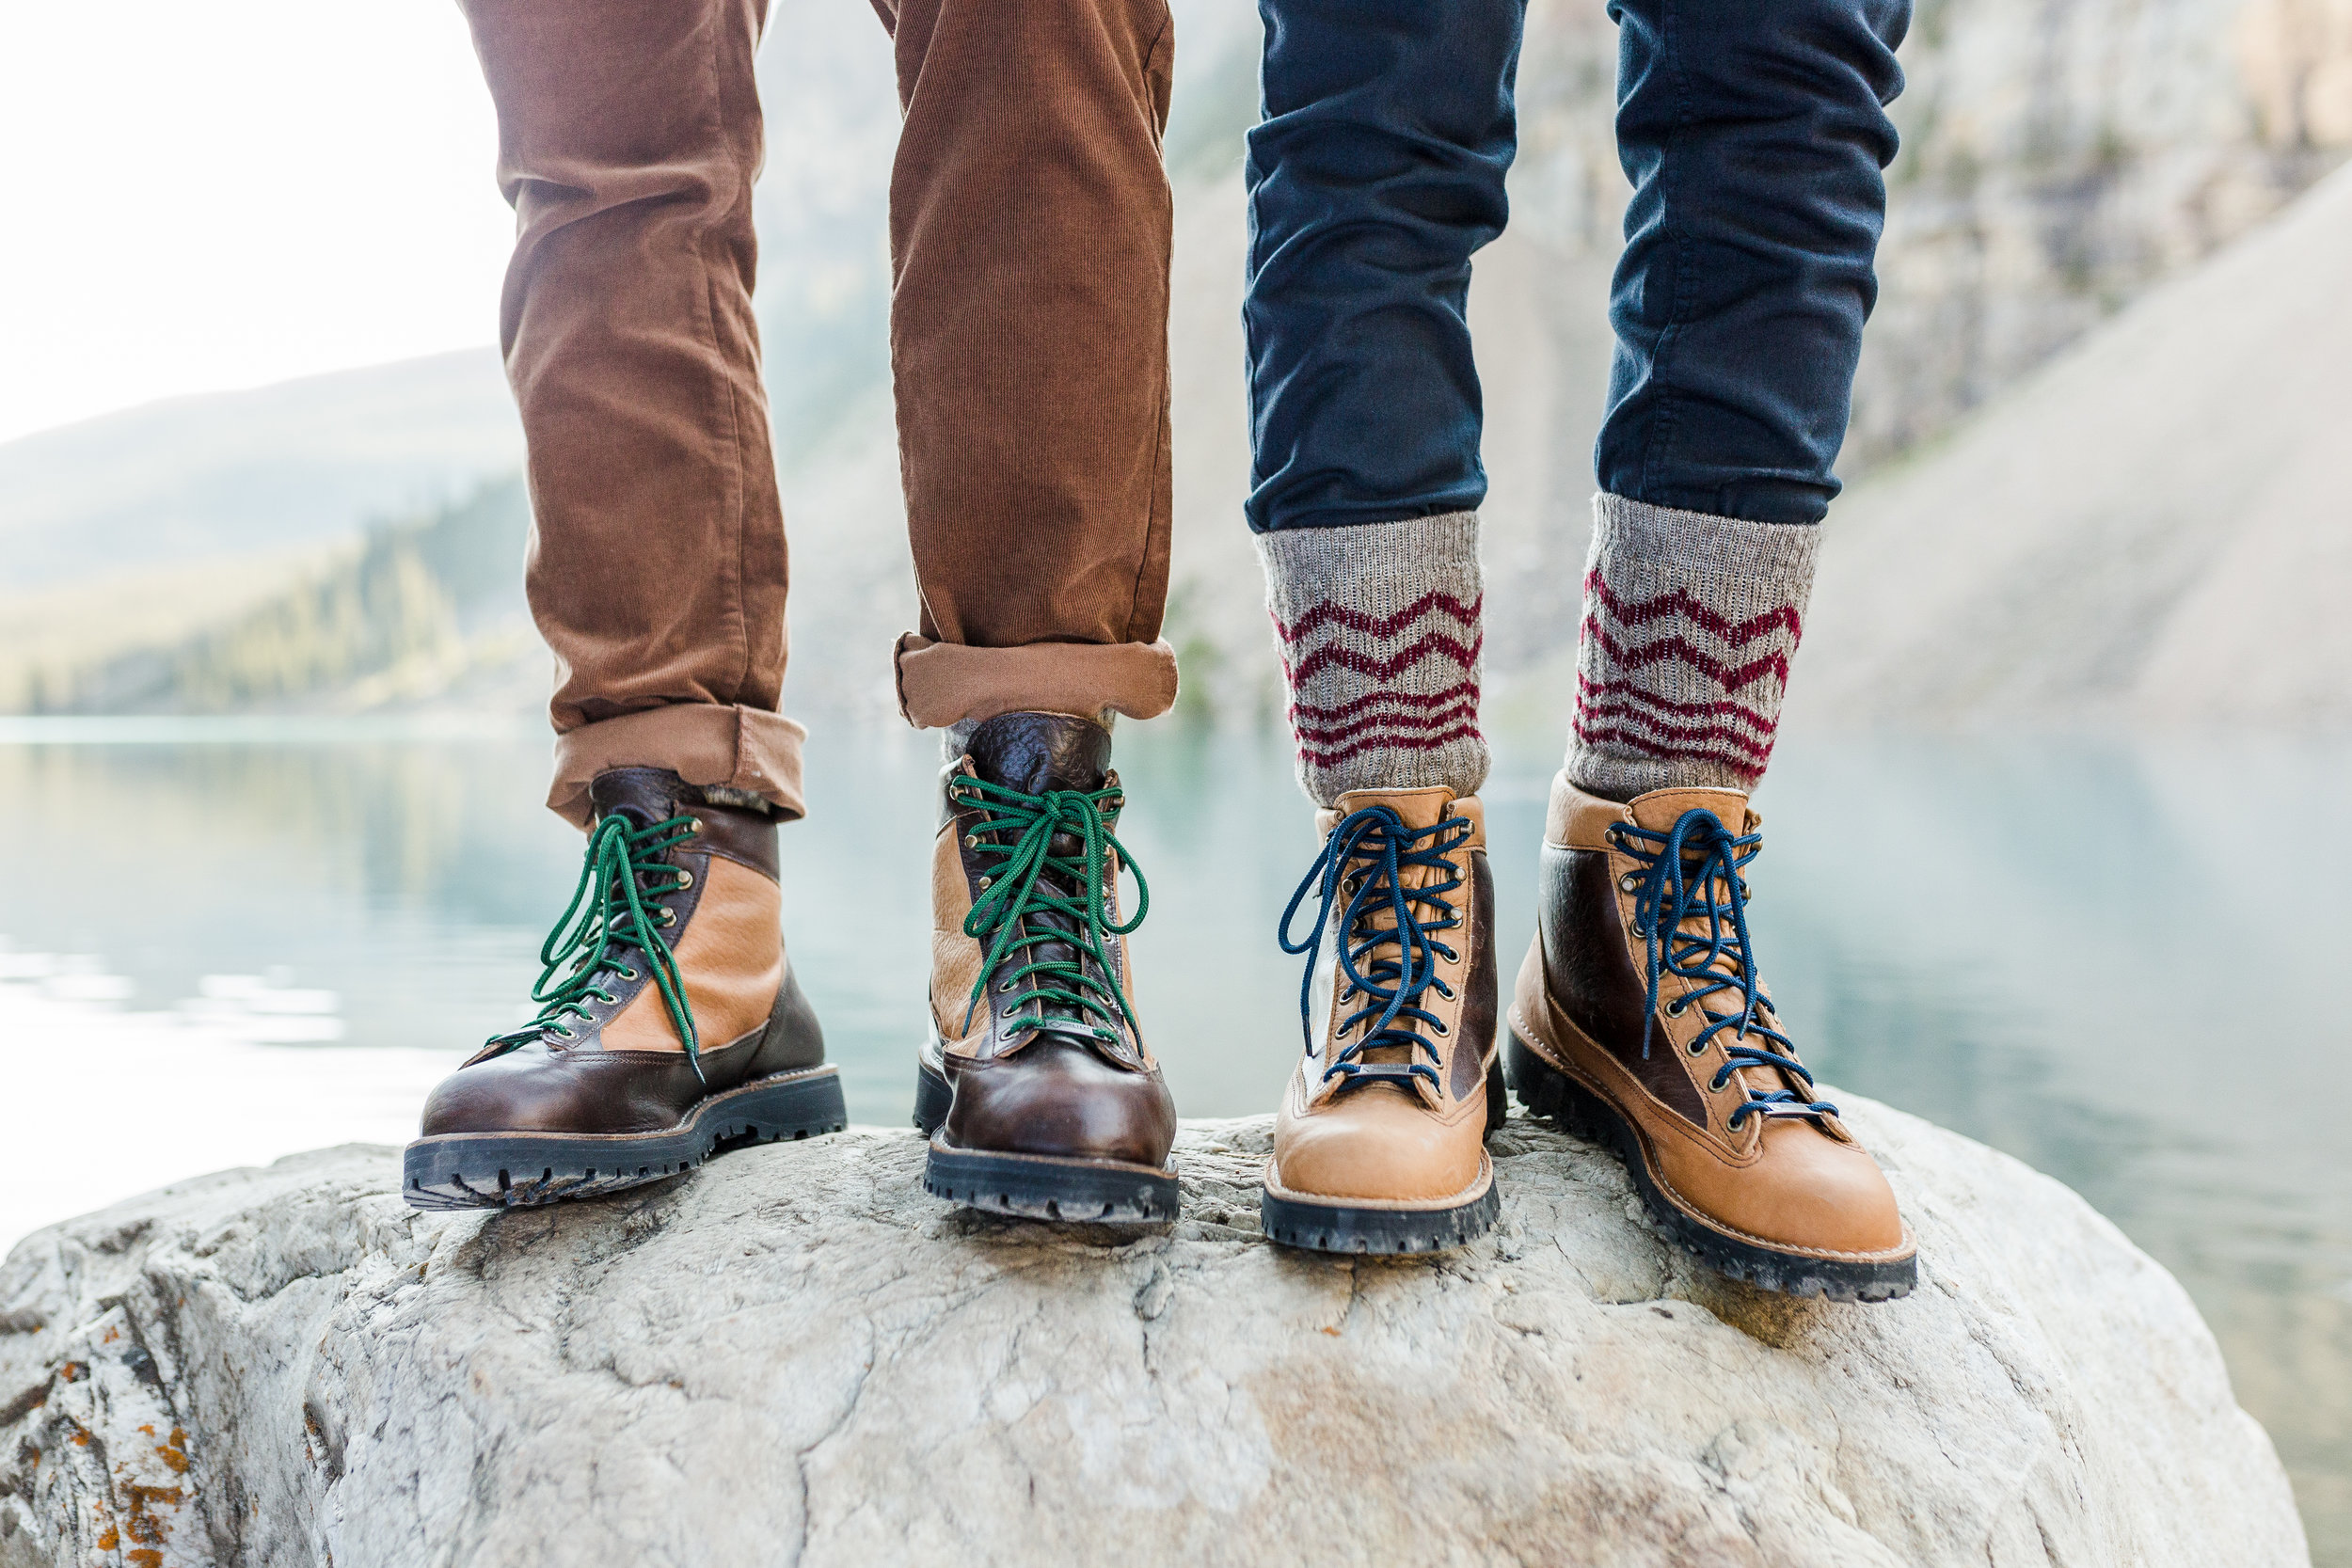 The classic light boot is one of Danner's most iconic styles, and it's given a new spin with the special edition Horween bison leather option from the UBB x Danner collaboration.